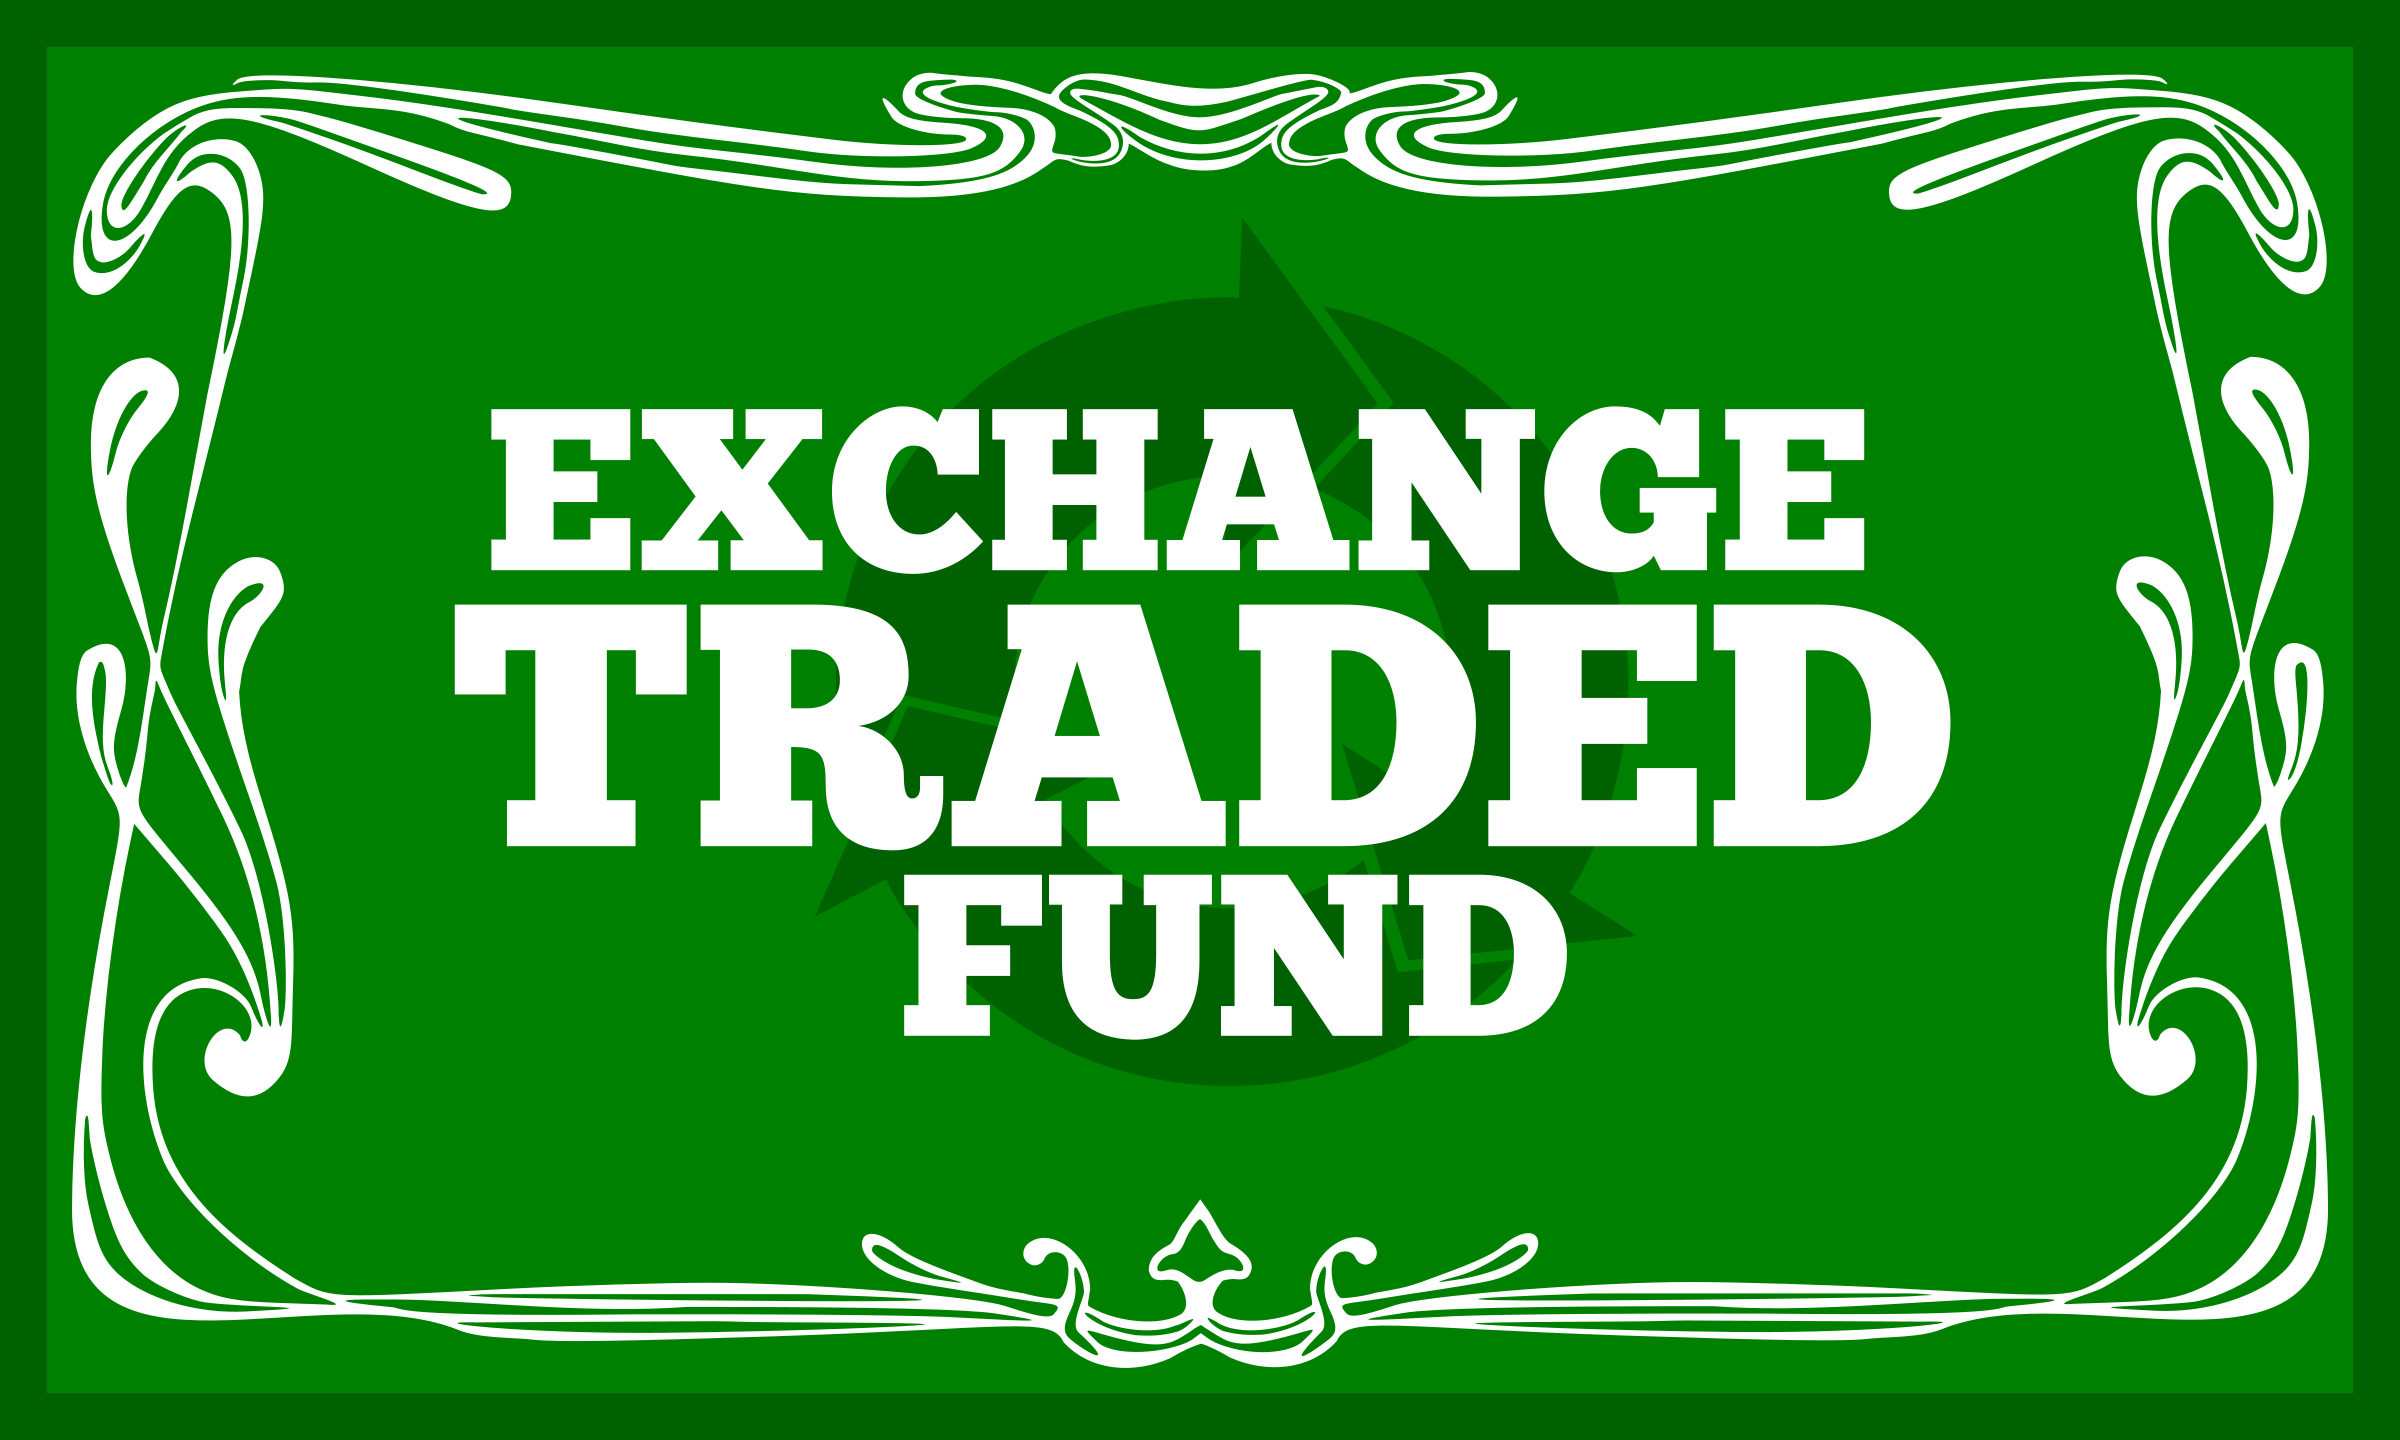 Exchange Traded Fund by Alastair